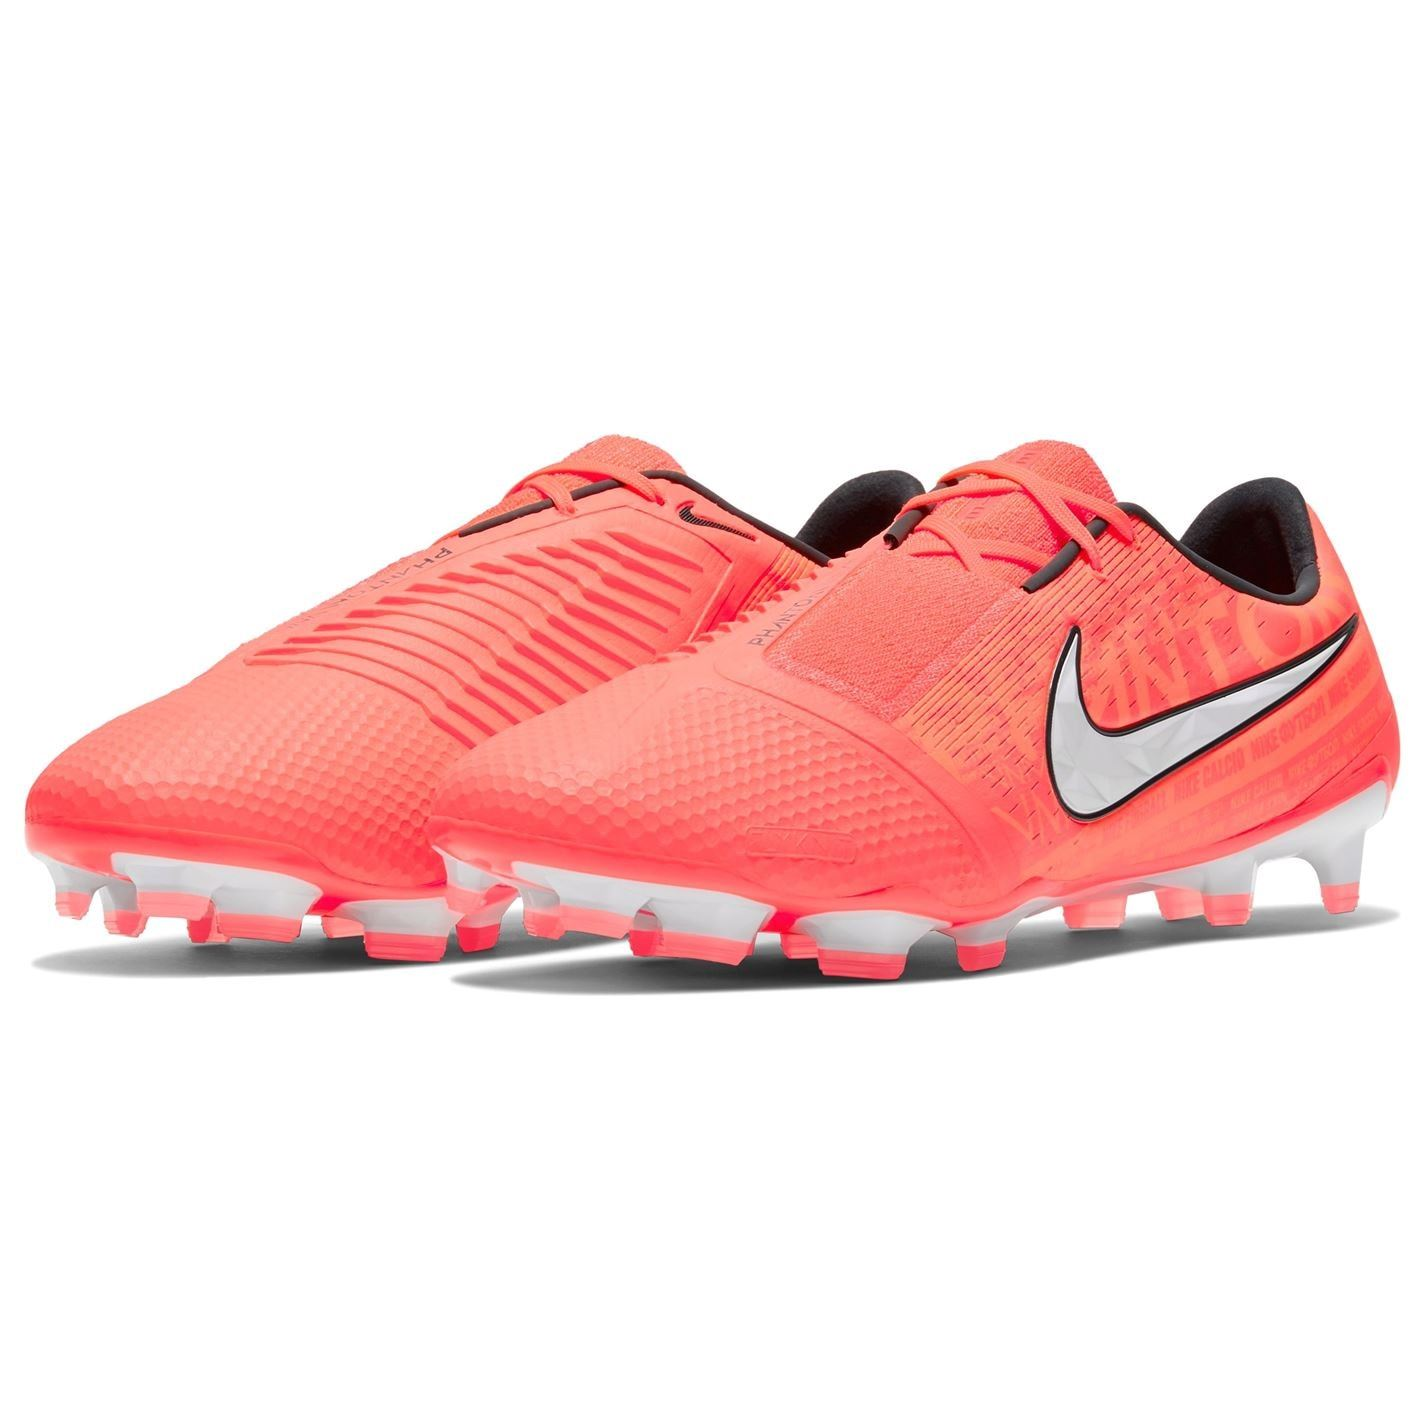 Nike-Phantom-Venom-Elite-Homme-FG-Firm-Ground-Chaussures-De-Football-Chaussures-de-foot-crampons miniature 6